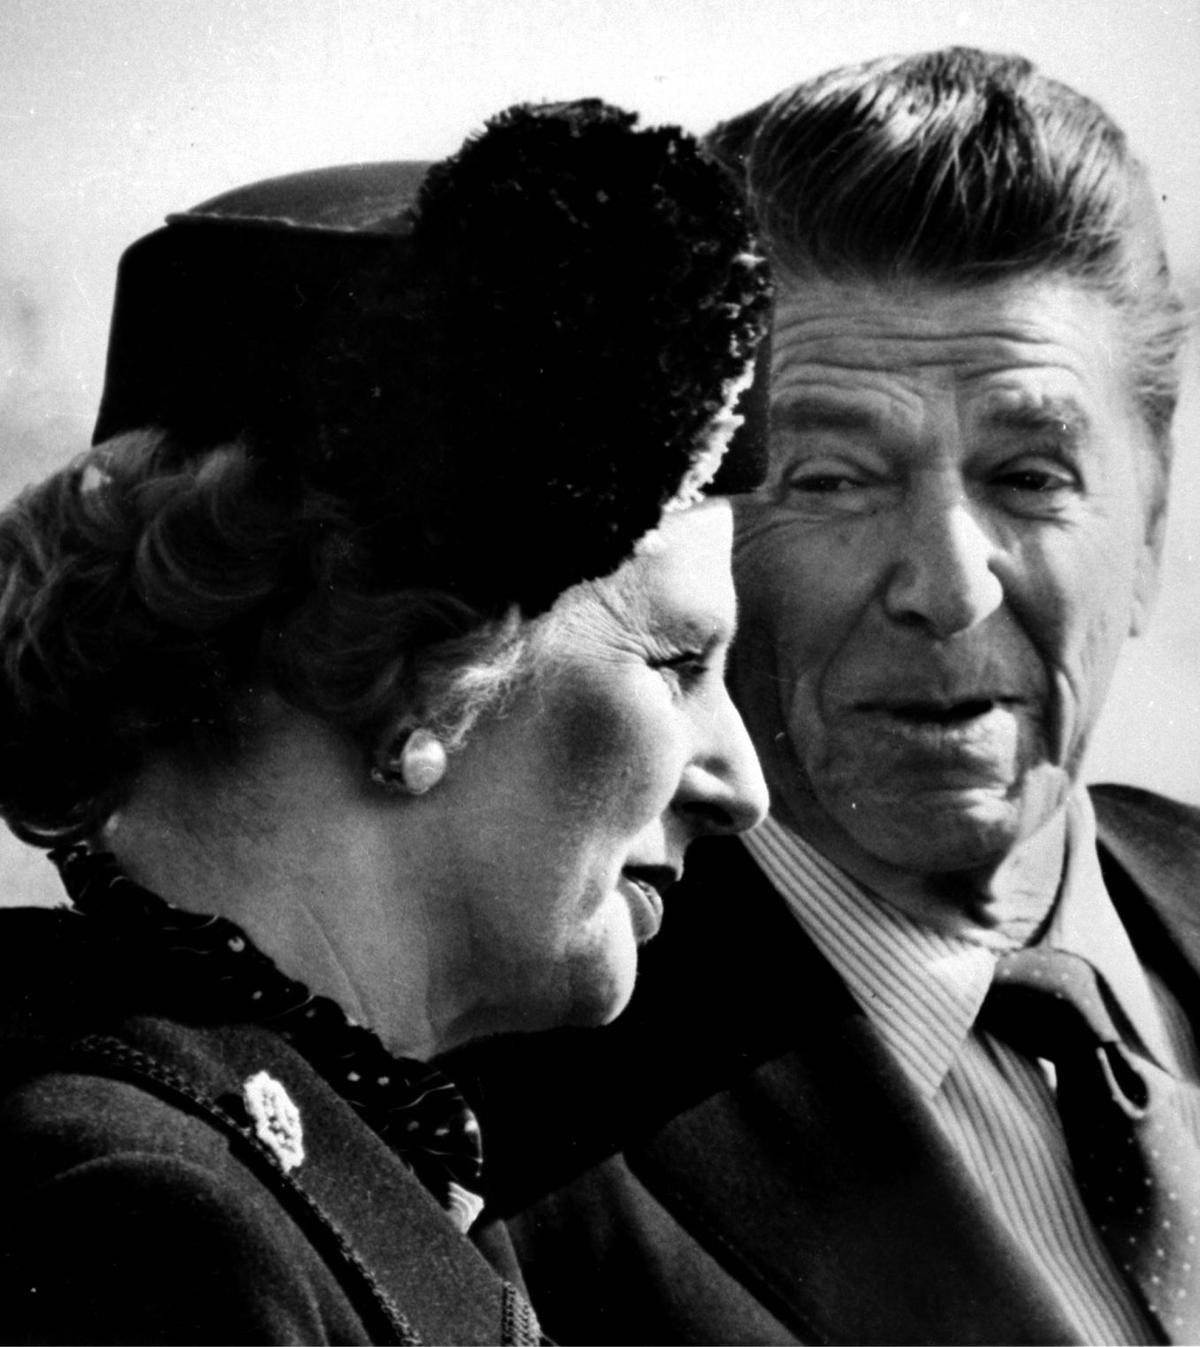 GILBRETH COLUMN: It's time 'Iron Lady' gets respect she deserves